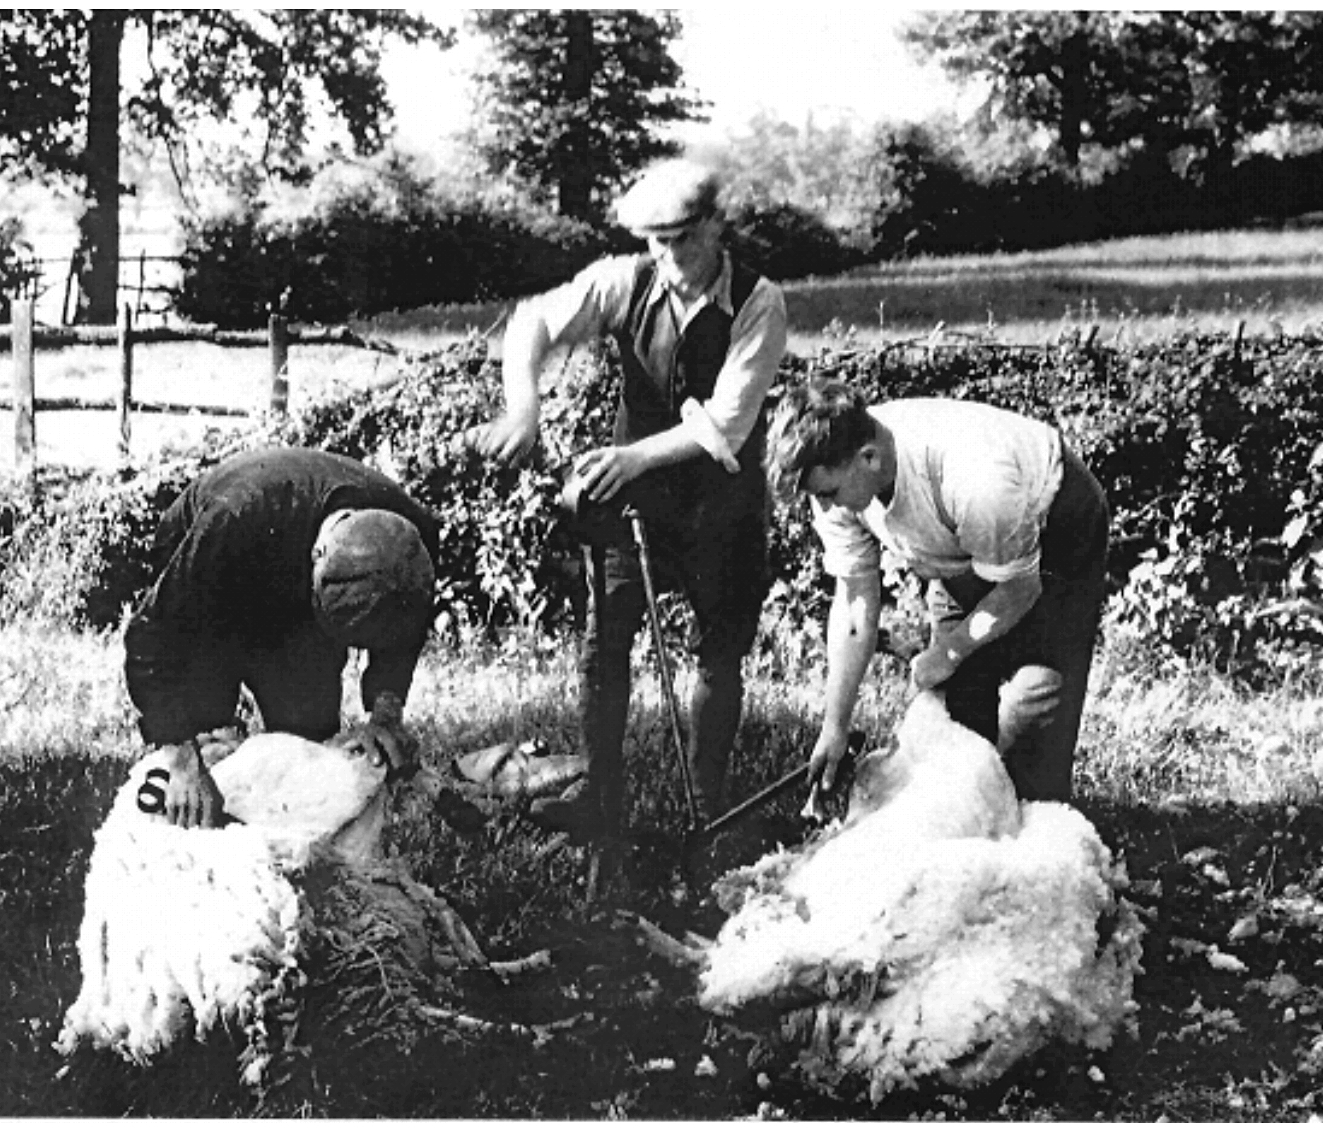 Shearing in the 1930s. Mechanical clippers are now replacing hand shears — Courtesy of H. Spencer